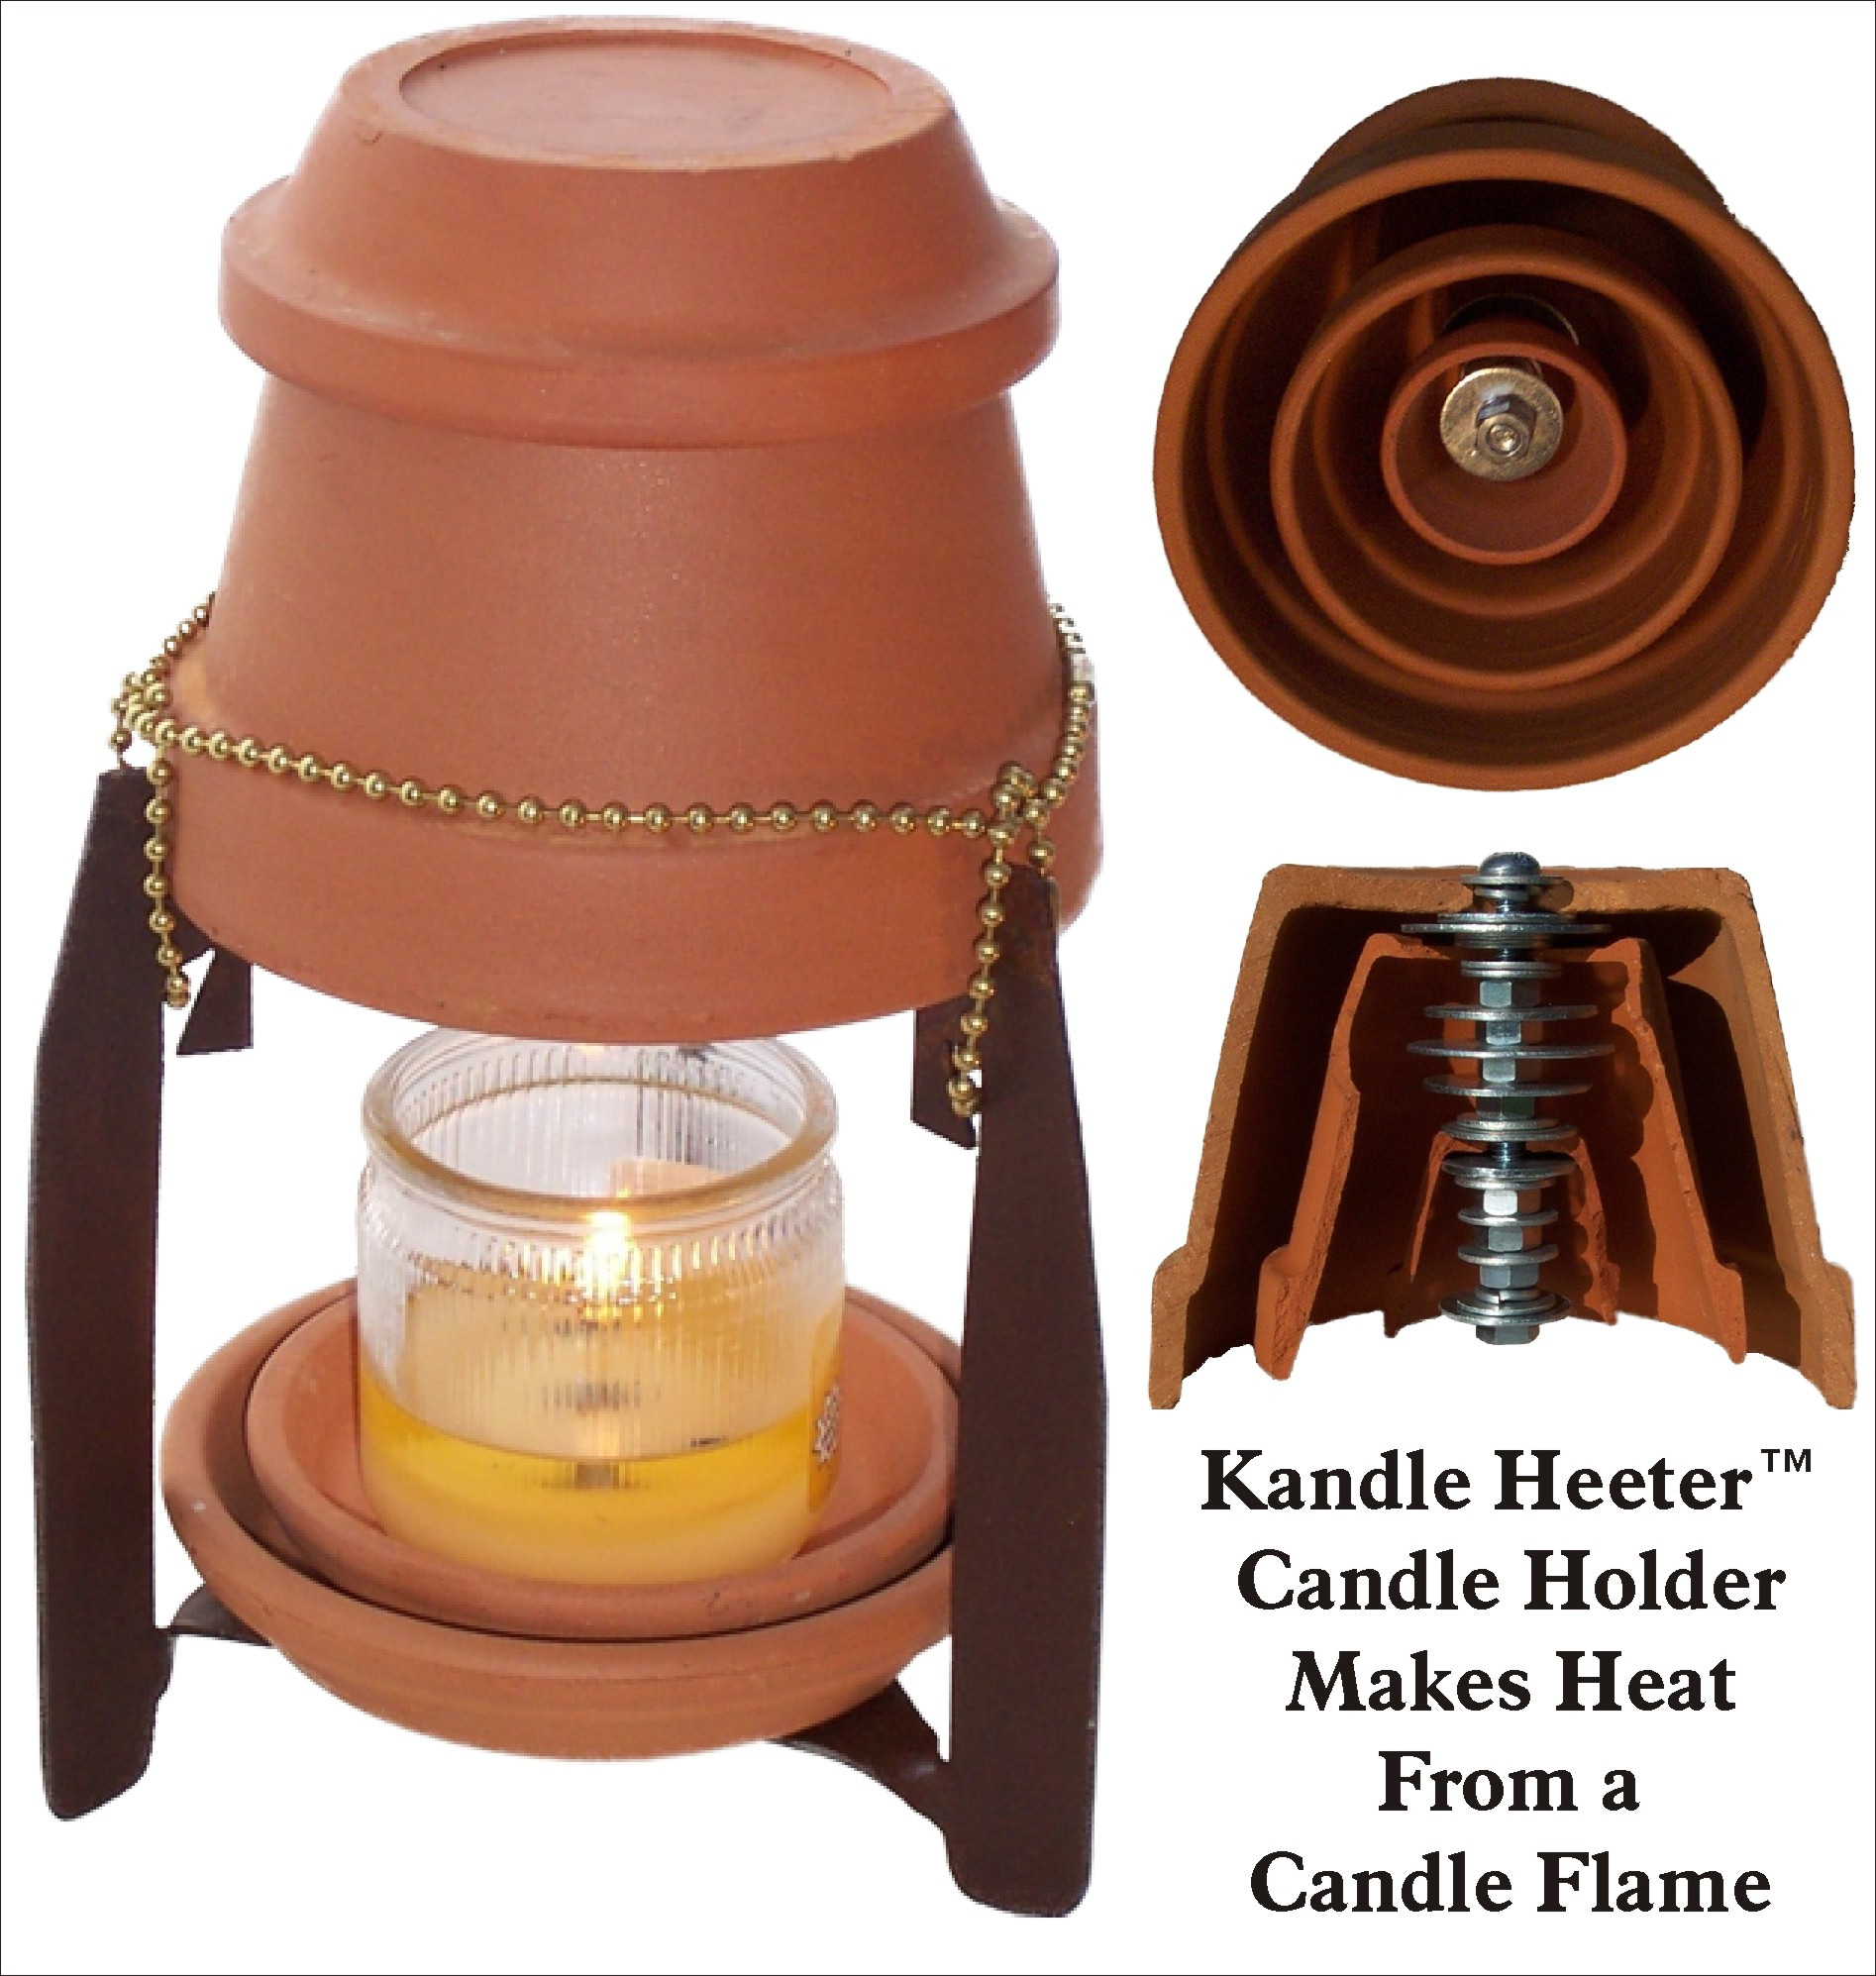 Kandle Heeter How To Heat Up Your Room Using A Candle